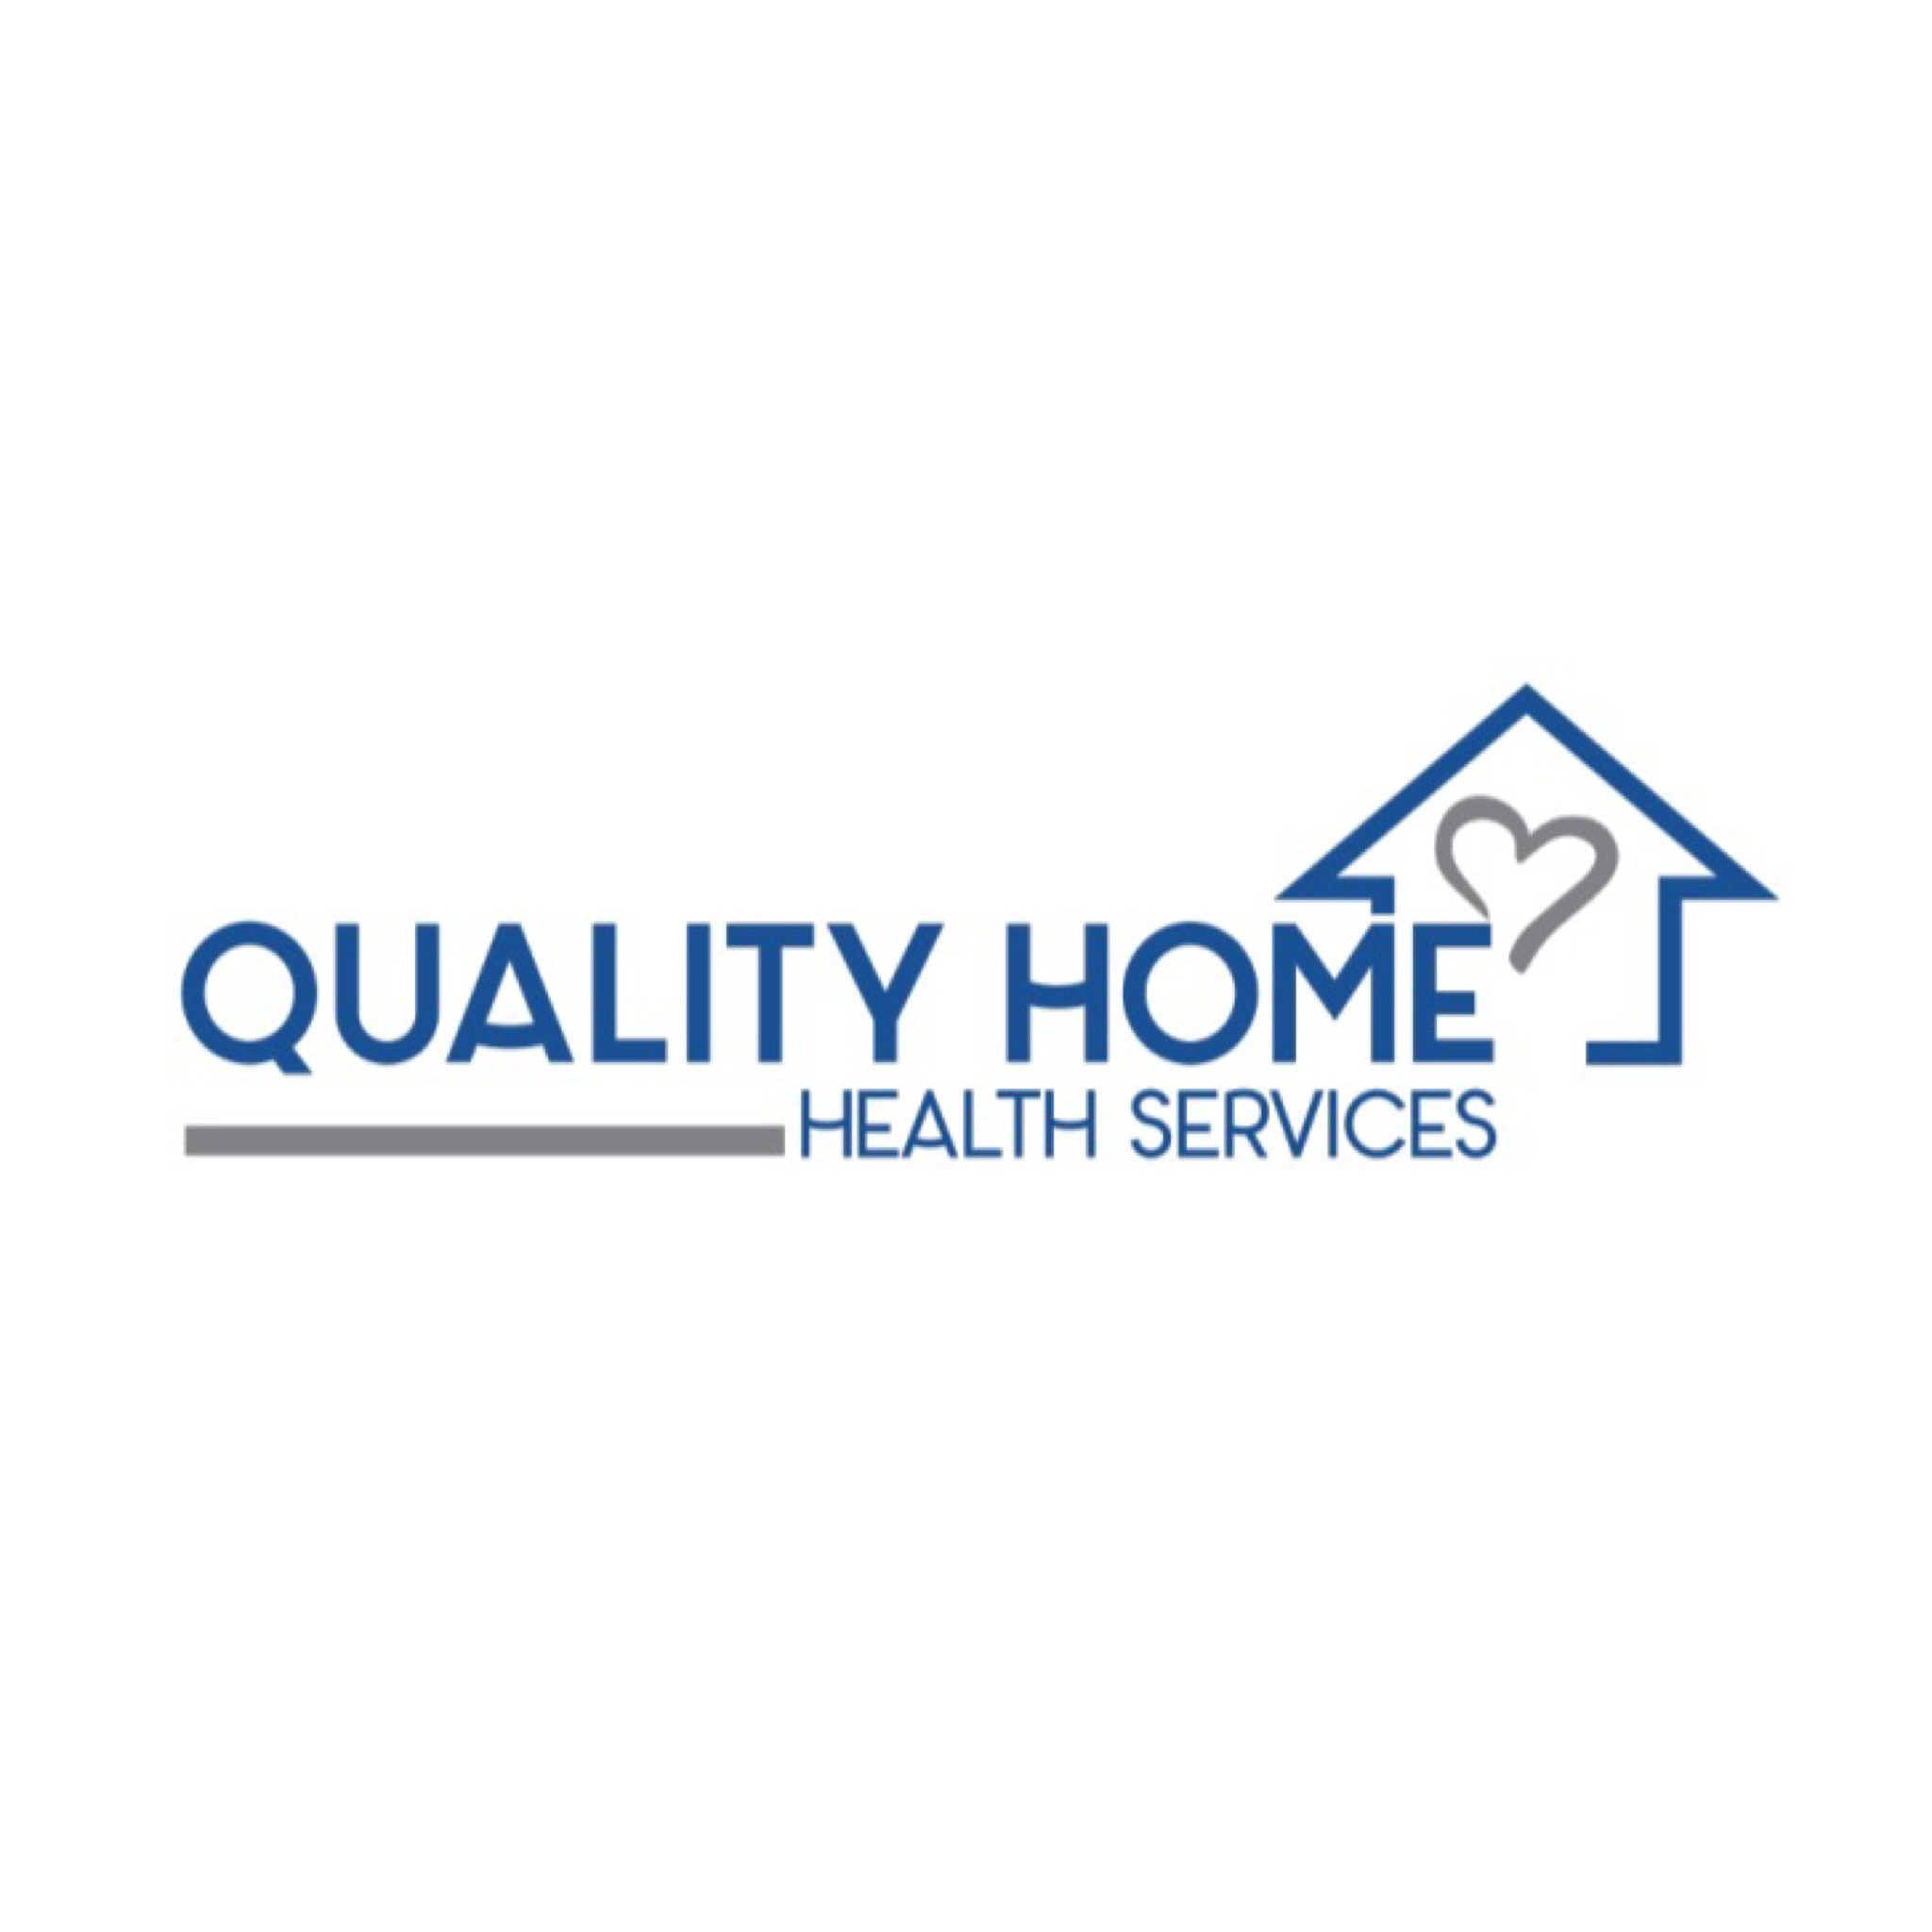 Quality Home Health Services